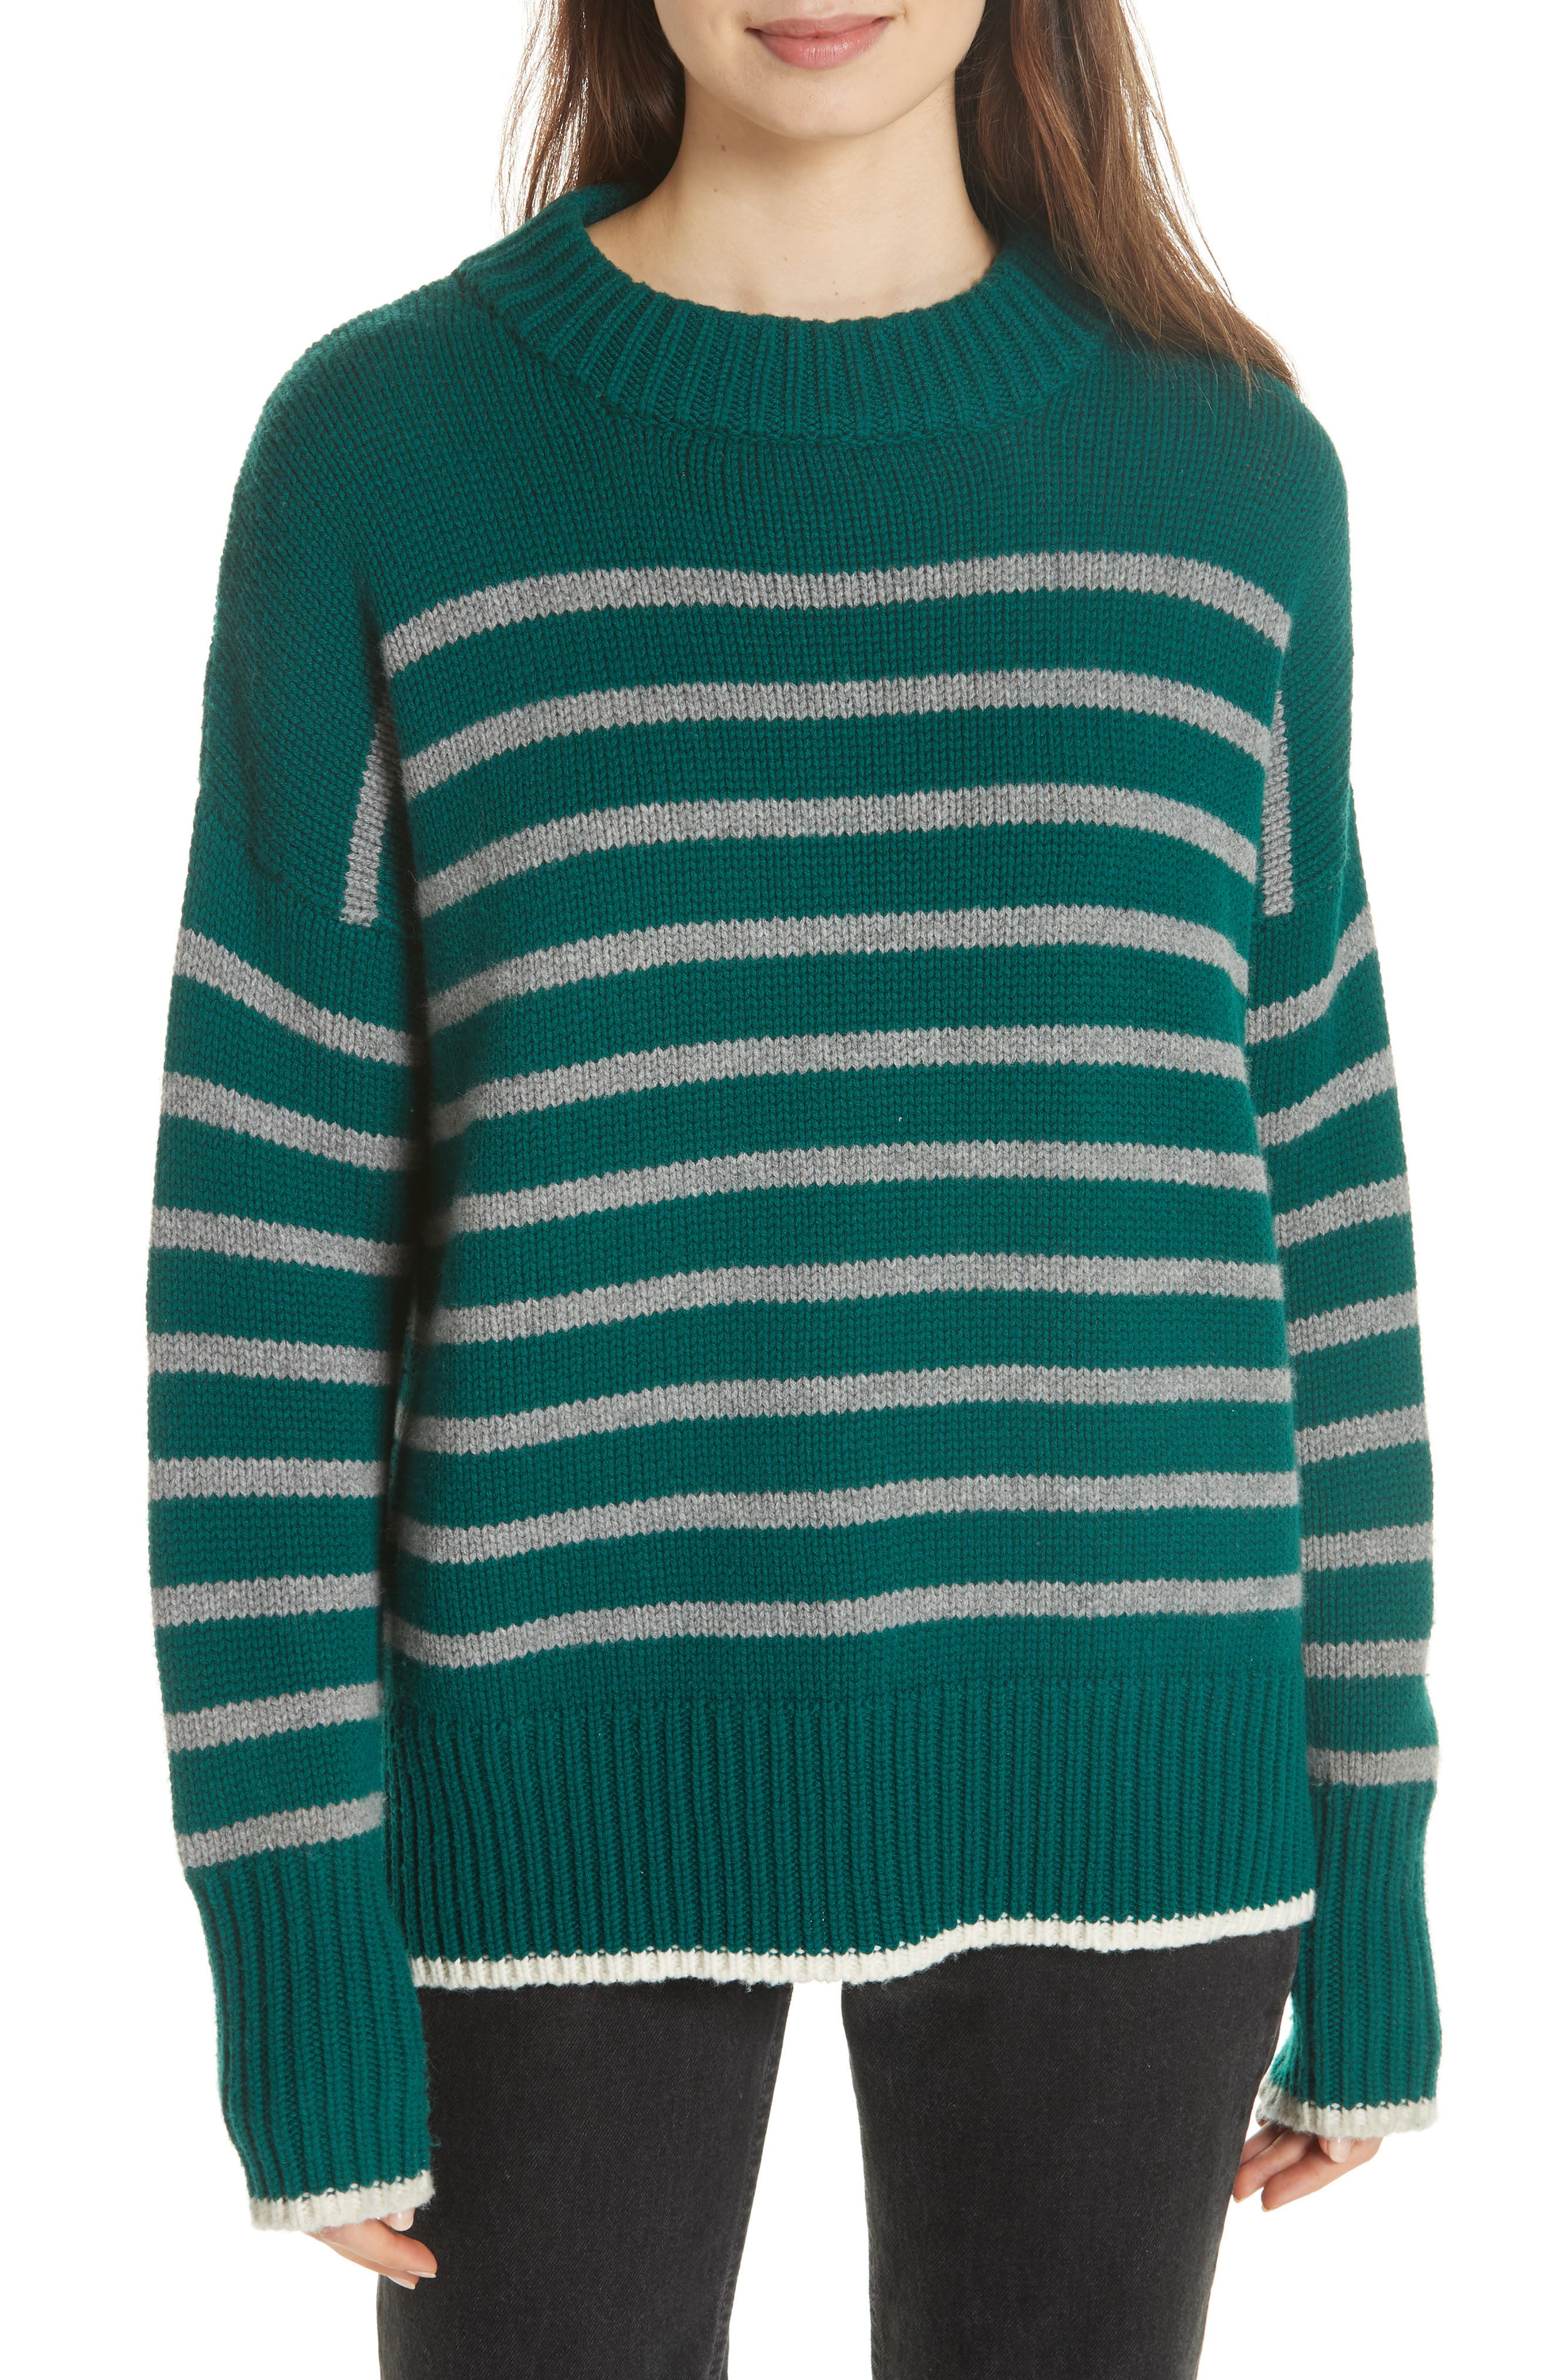 Marin Wool & Cashmere Sweater in Forest Green/ Grey Marle